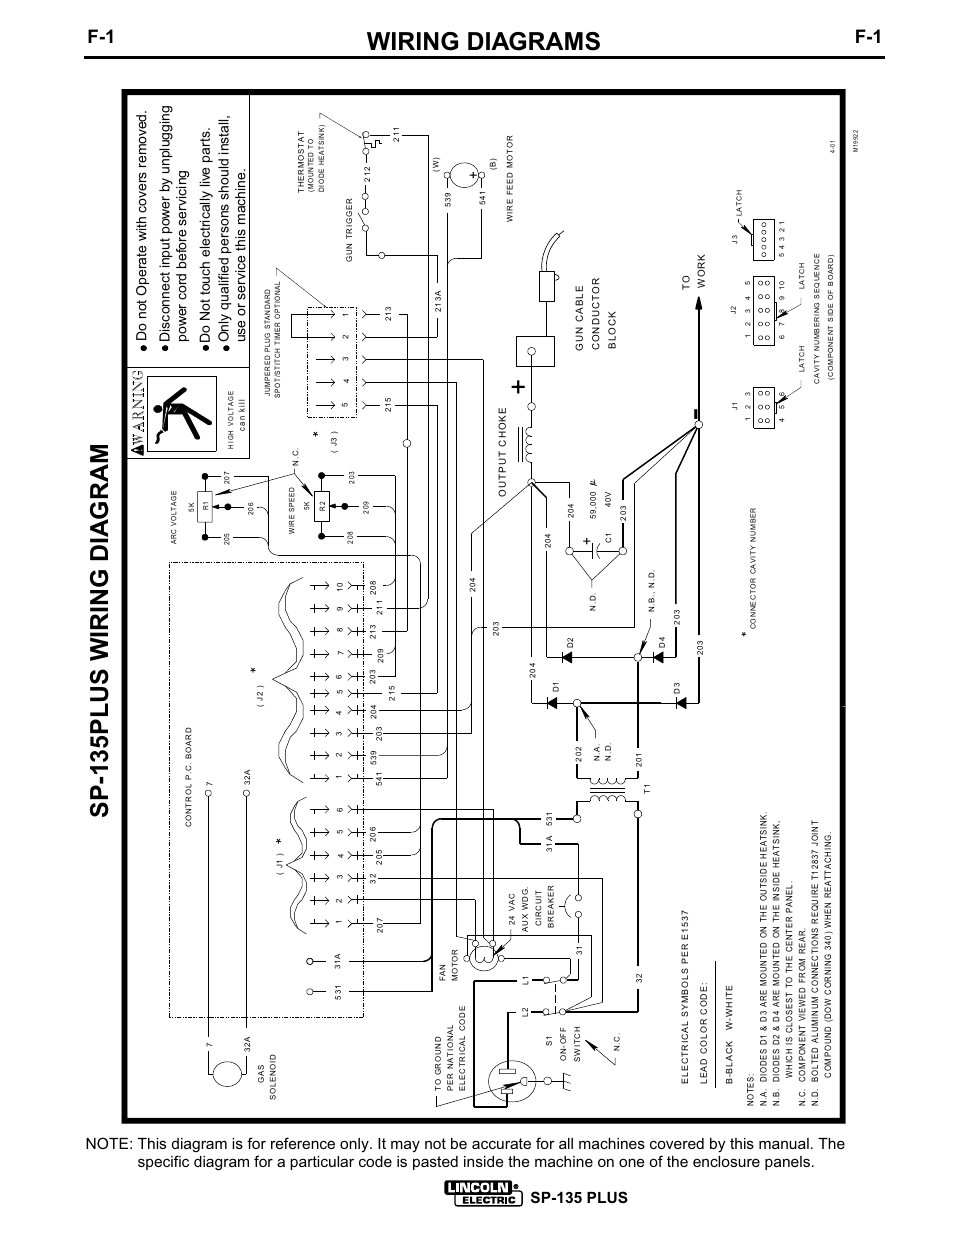 medium resolution of wiring diagrams sp 135plus wiring dia gram sp 135 plus lincoln